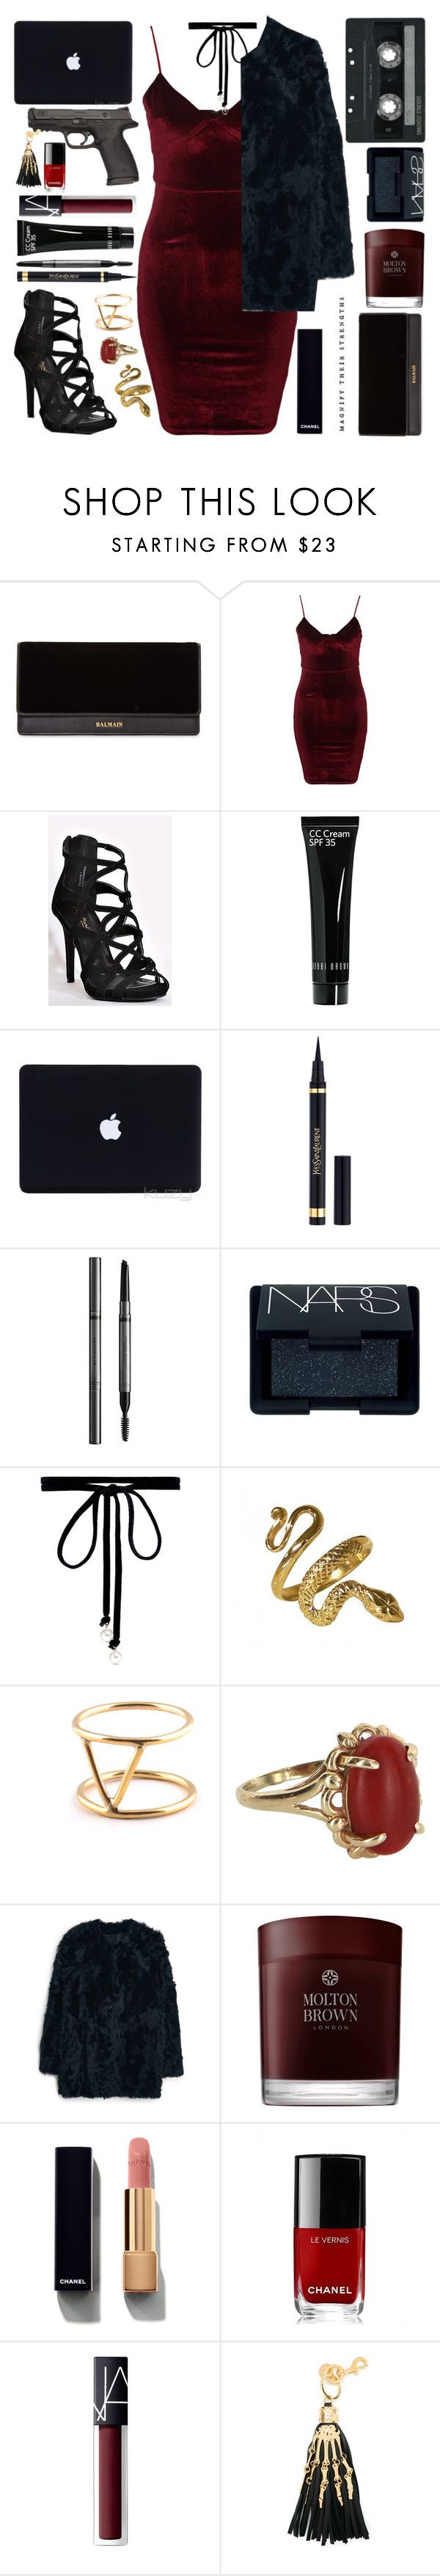 """La fièvre du samedi soir {NYE}"" by trxpicalwhore ❤ liked on Polyvore featuring Balmain, Glamorous, Bobbi Brown Cosmetics, Yves Saint Laurent, Burberry, NARS Cosmetics, Joomi Lim, SOKO, Vintage and MANGO"